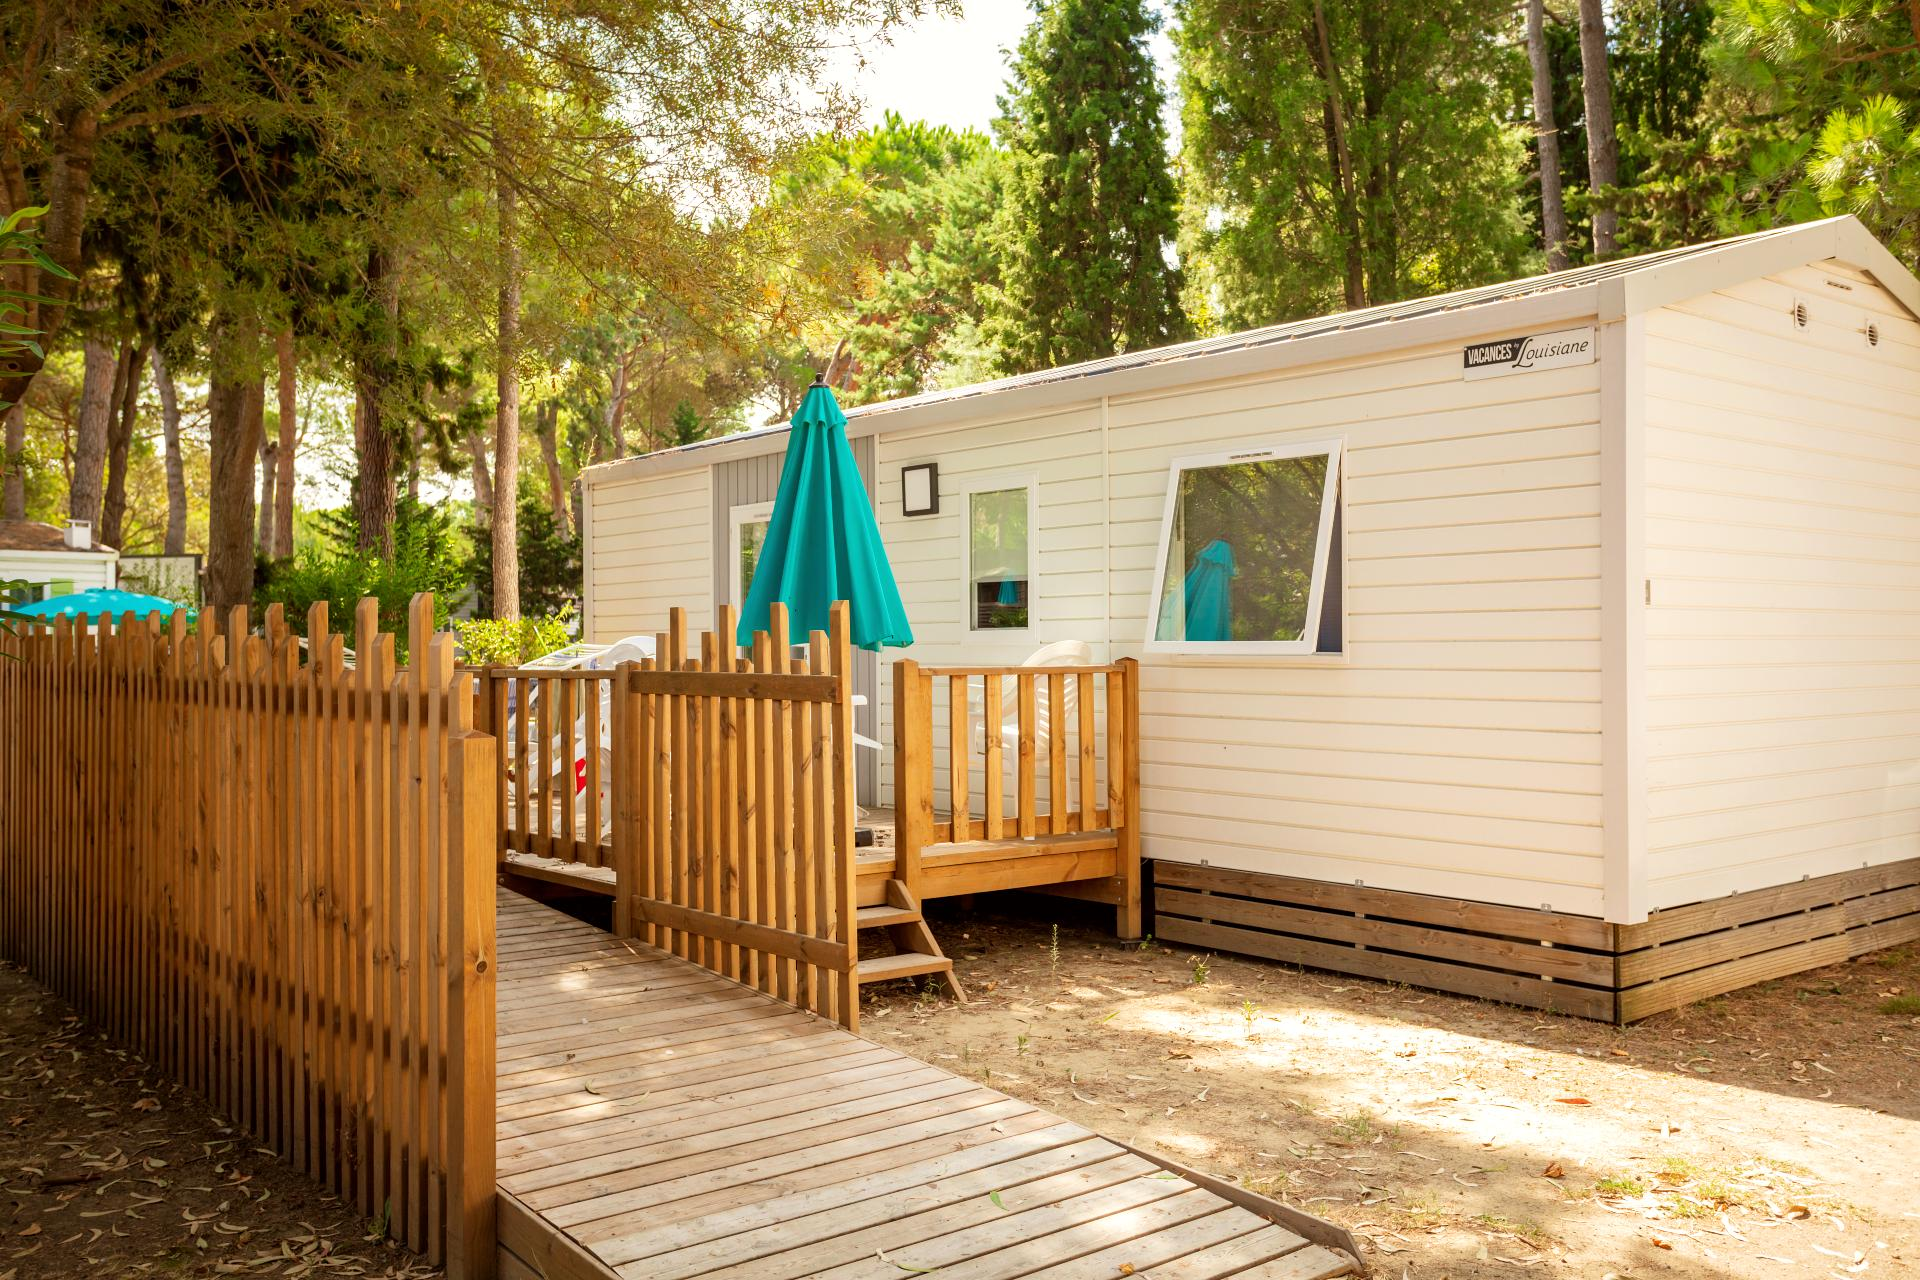 Location - Cottage Acces Pmr - Camping Ma Prairie